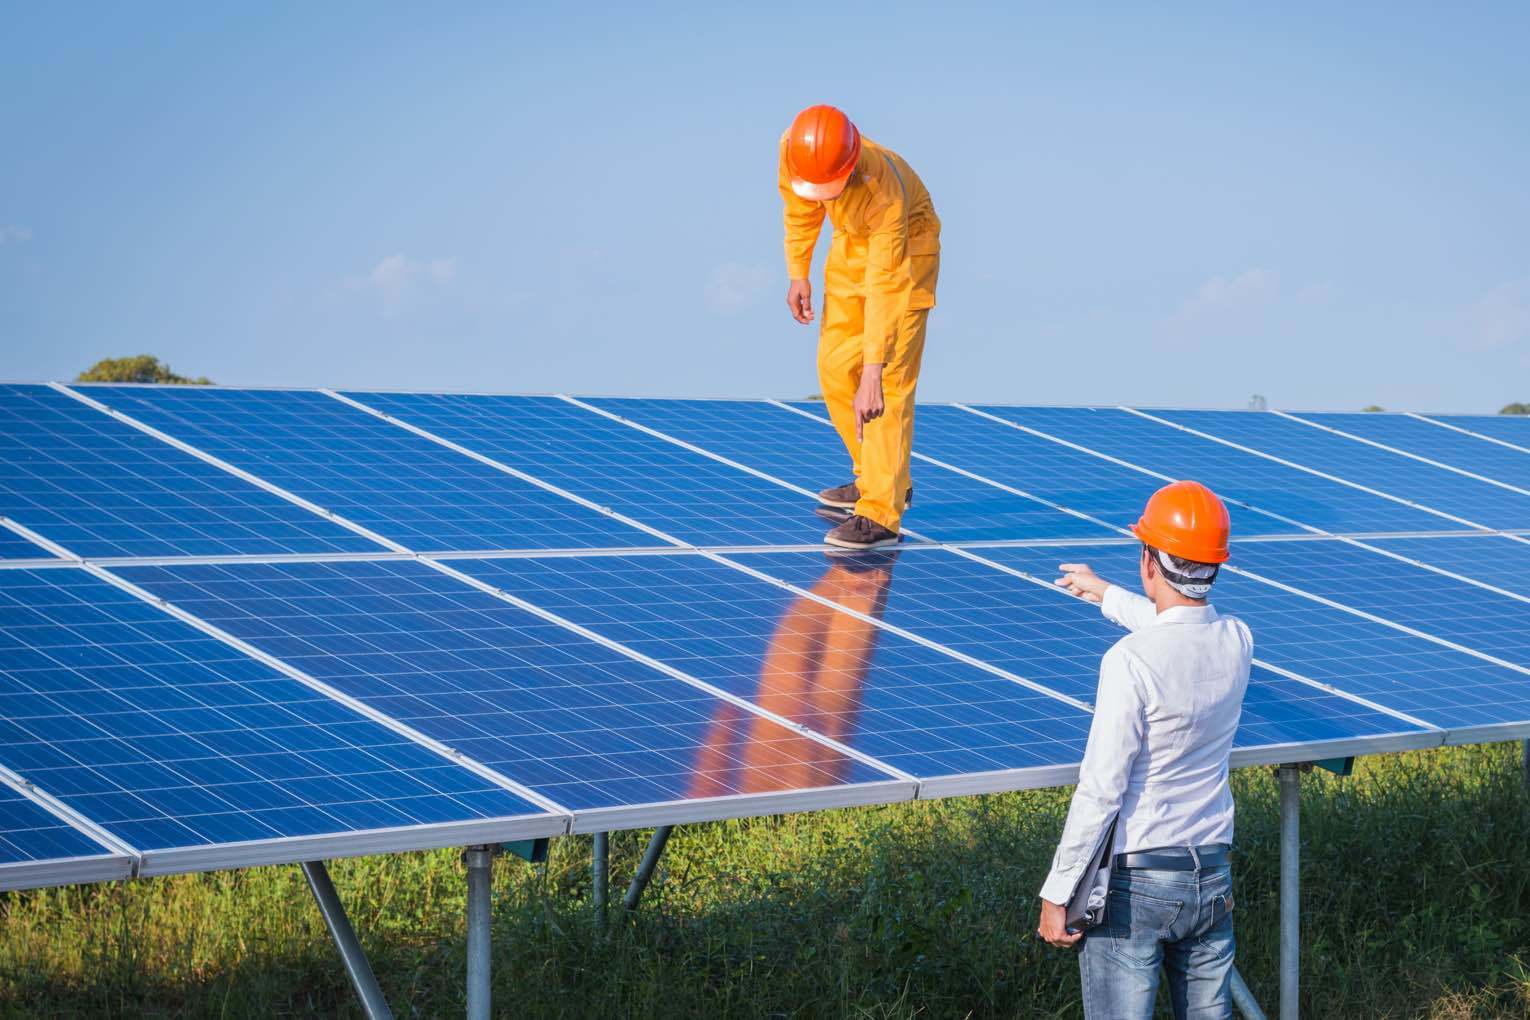 Renewable energy is here to stay